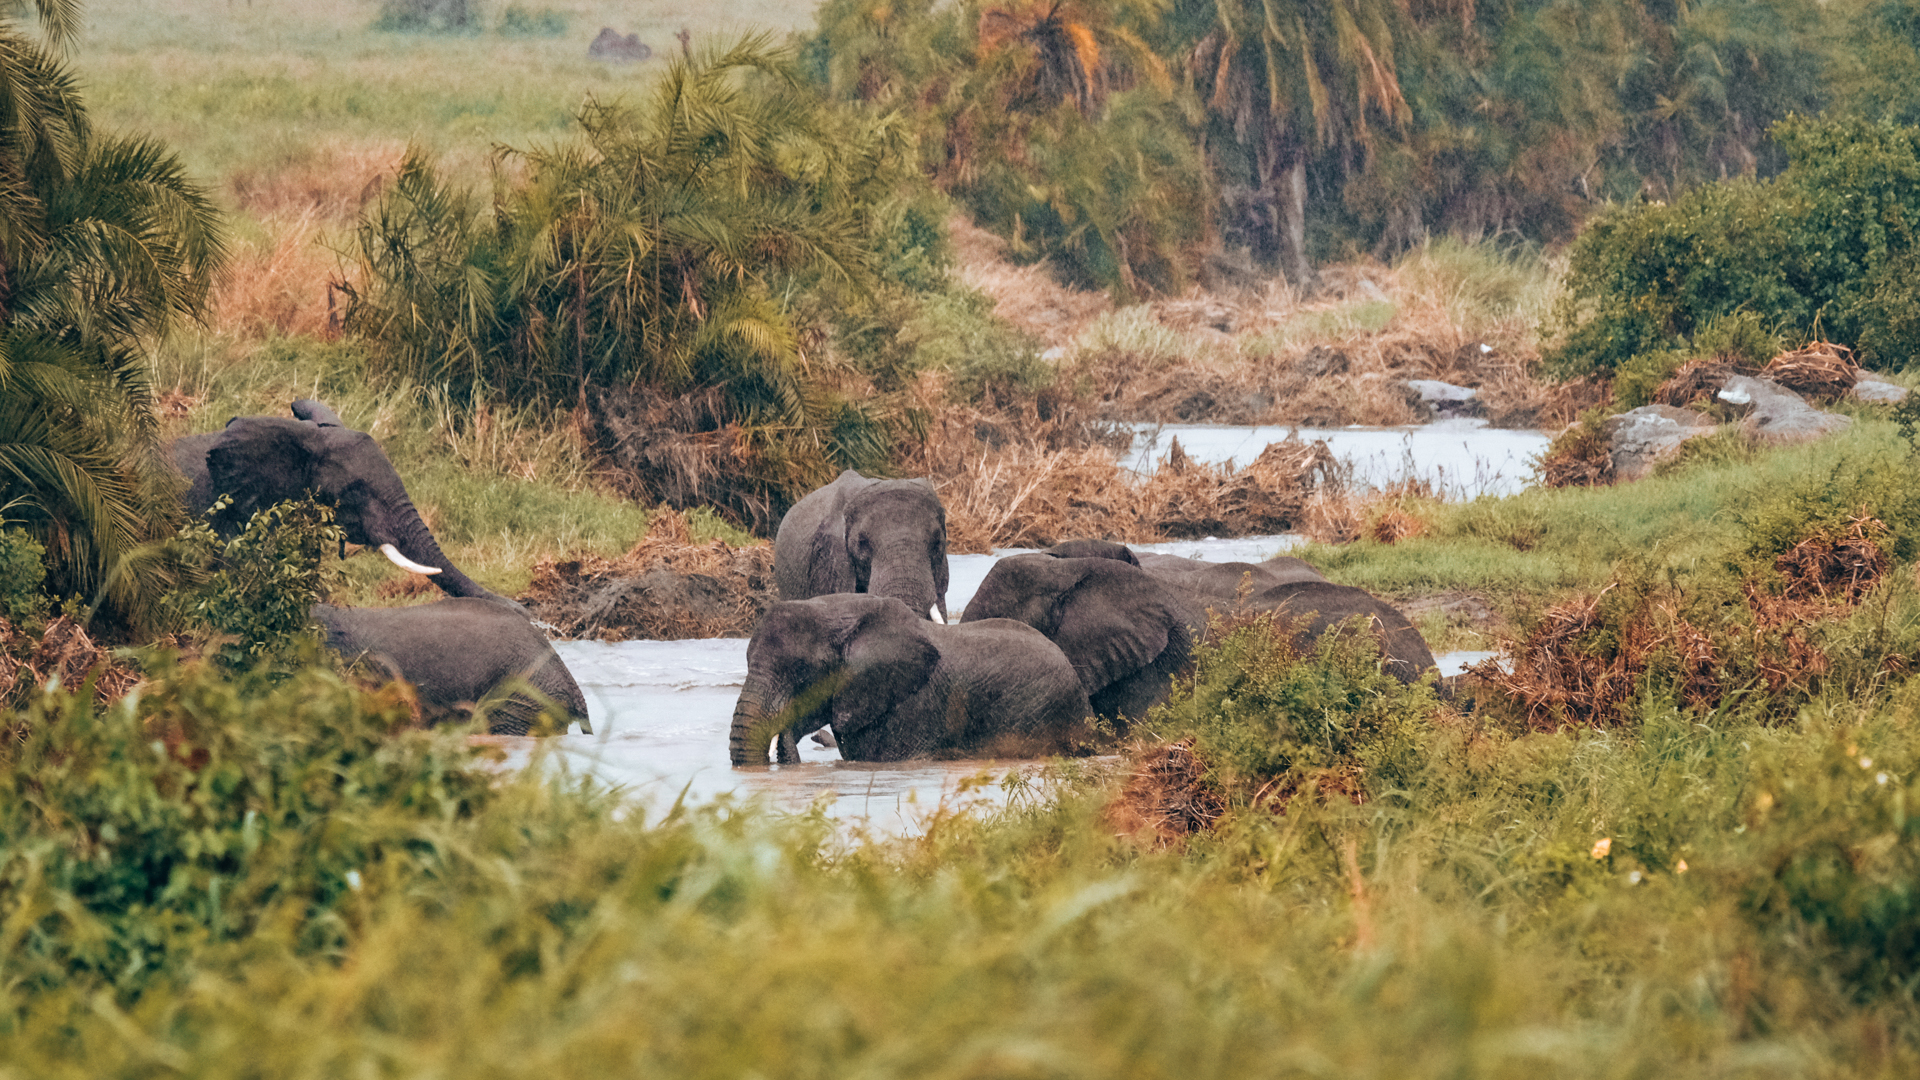 A group of elephants having a bath in the river in the Serengeti National Park, Tanzania